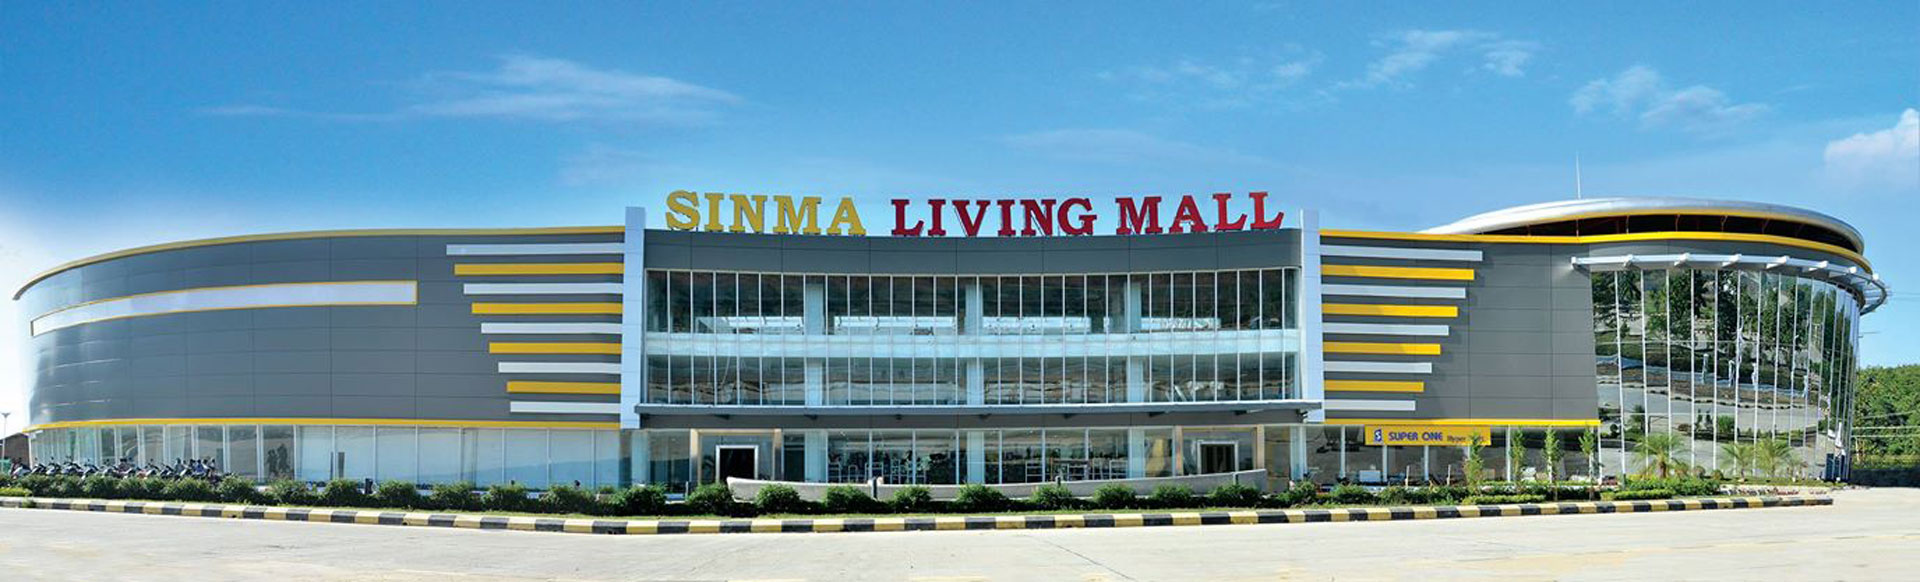 Sinma Living Mall - Shopping Mall - Pyinmana | Facebook ...